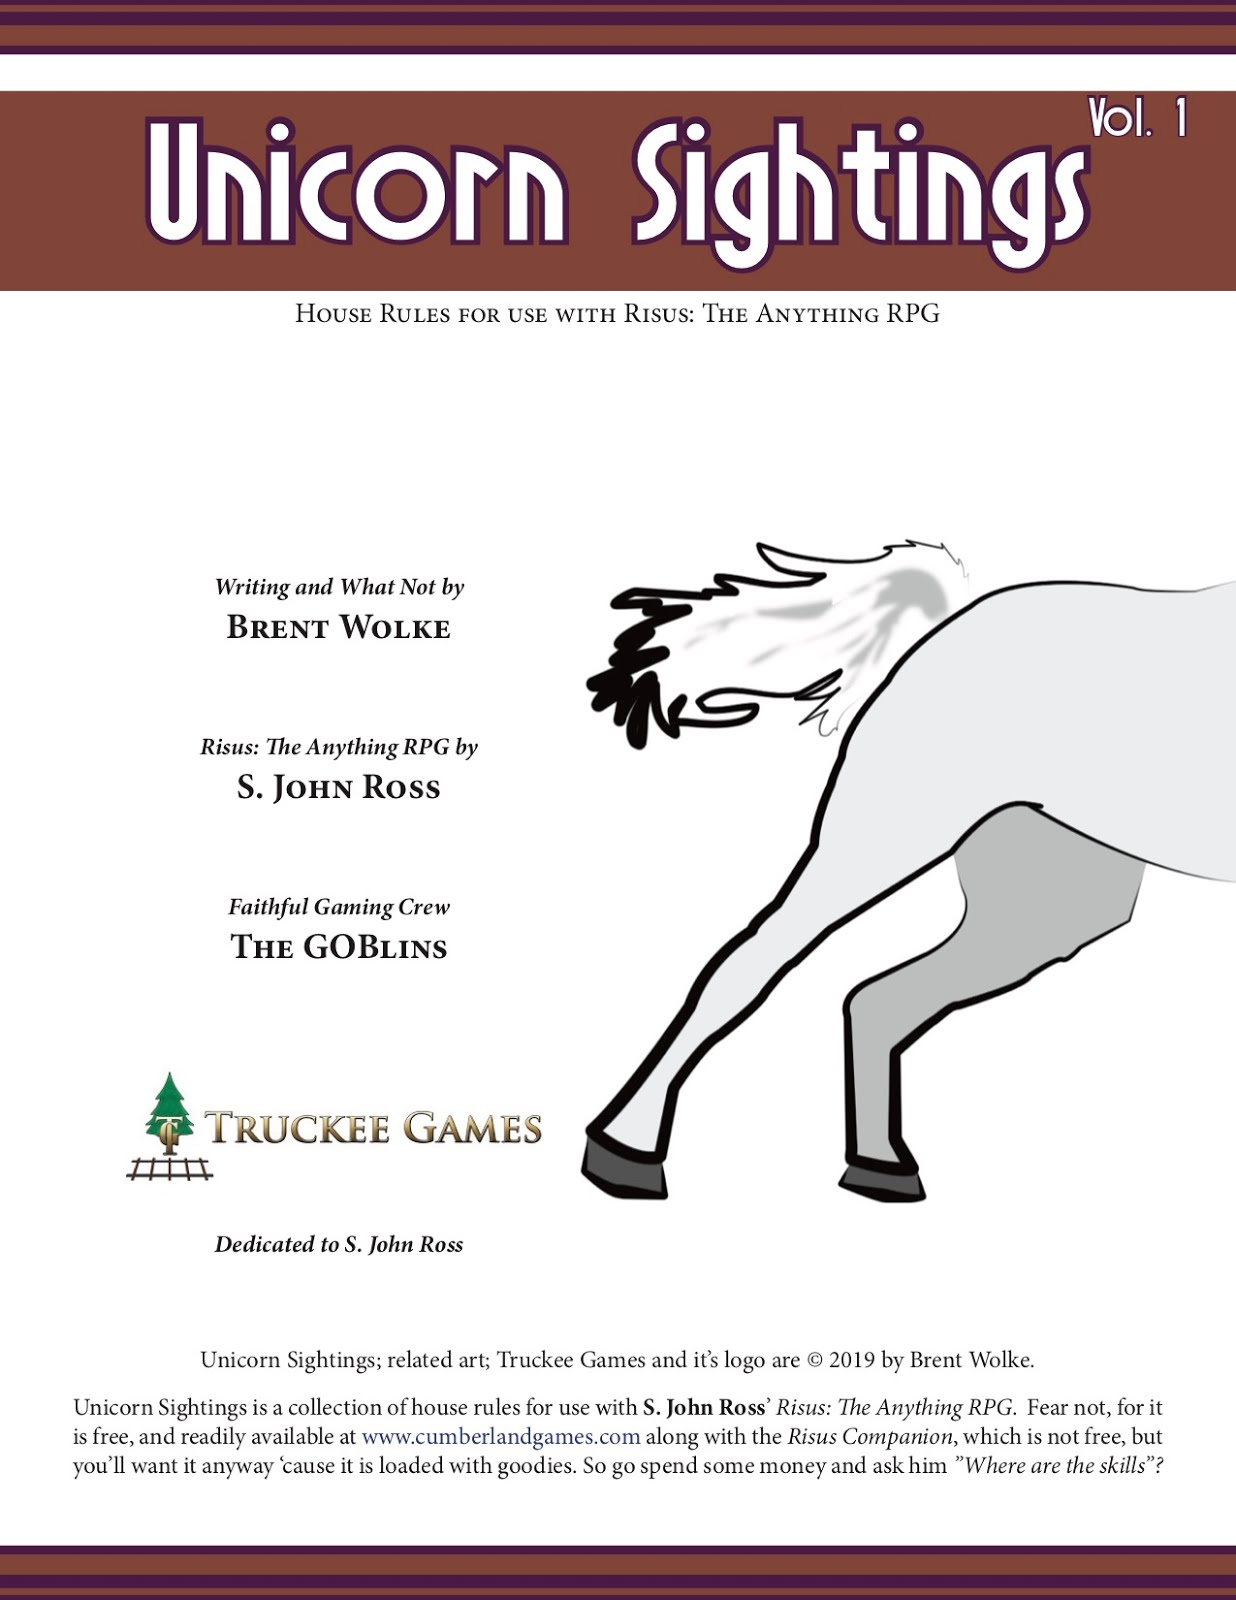 Unicorn Sightings